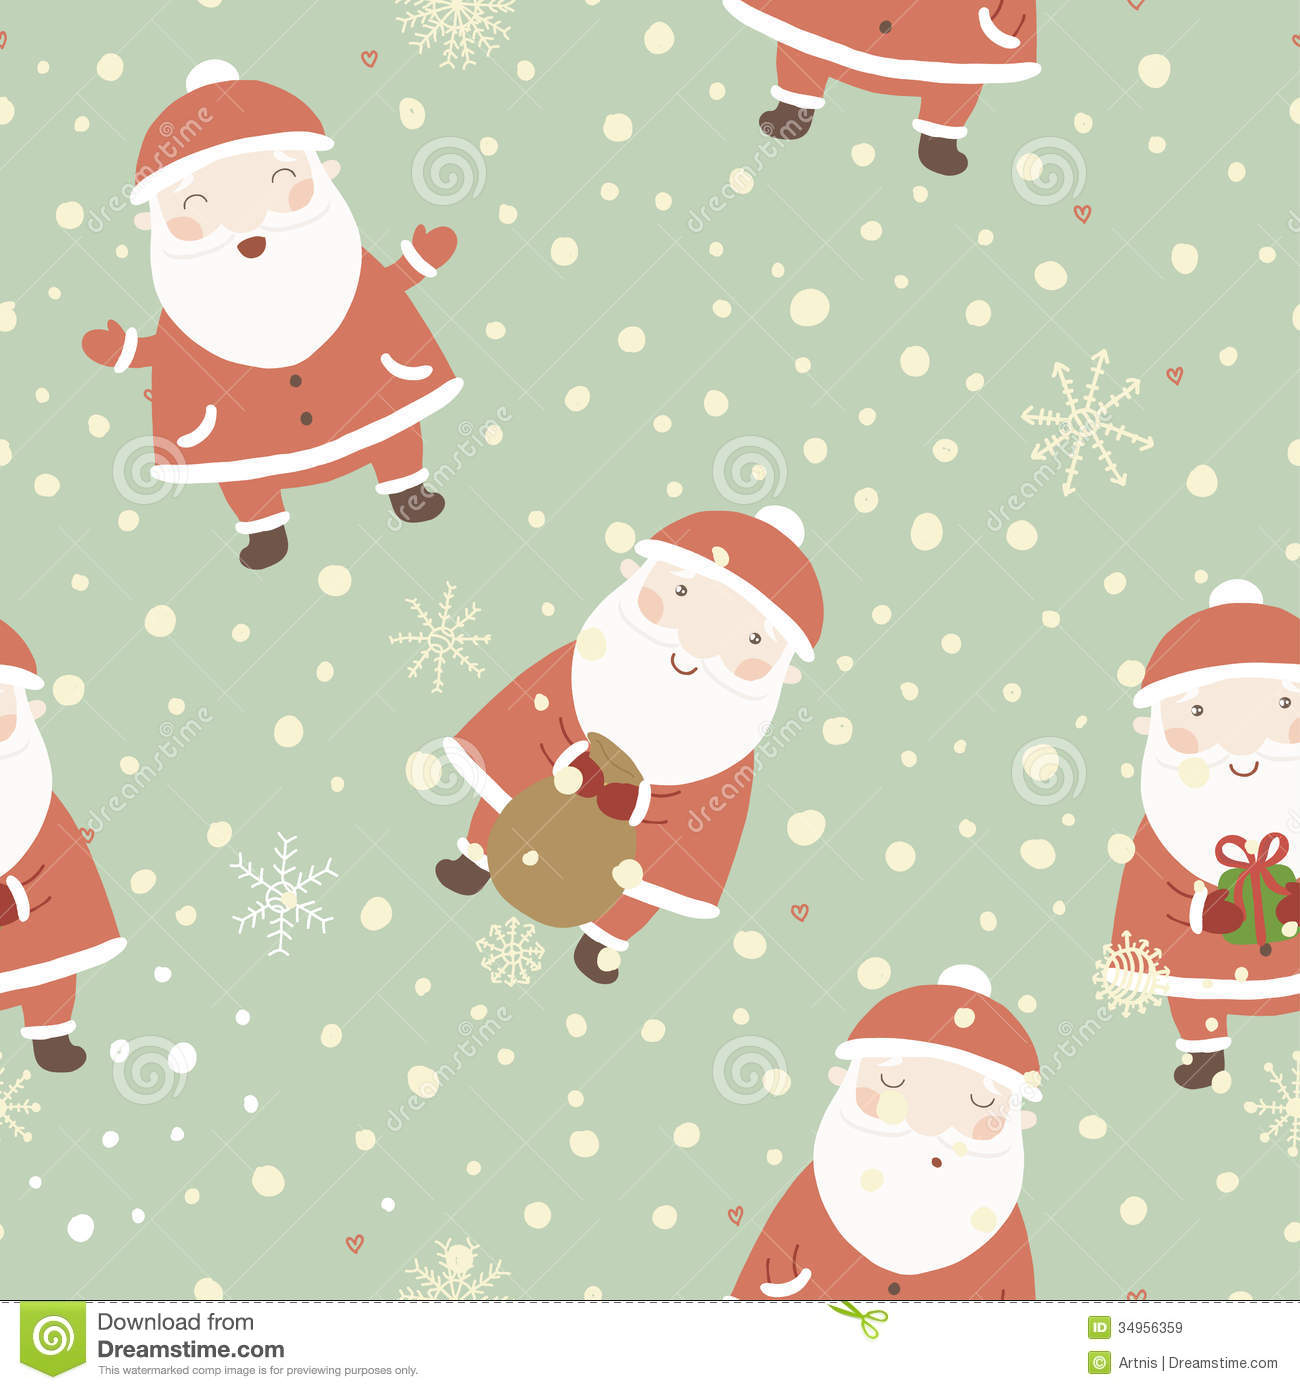 Wallpapers Fofo Cutes Christmas Background With Cute Santa Stock Vector